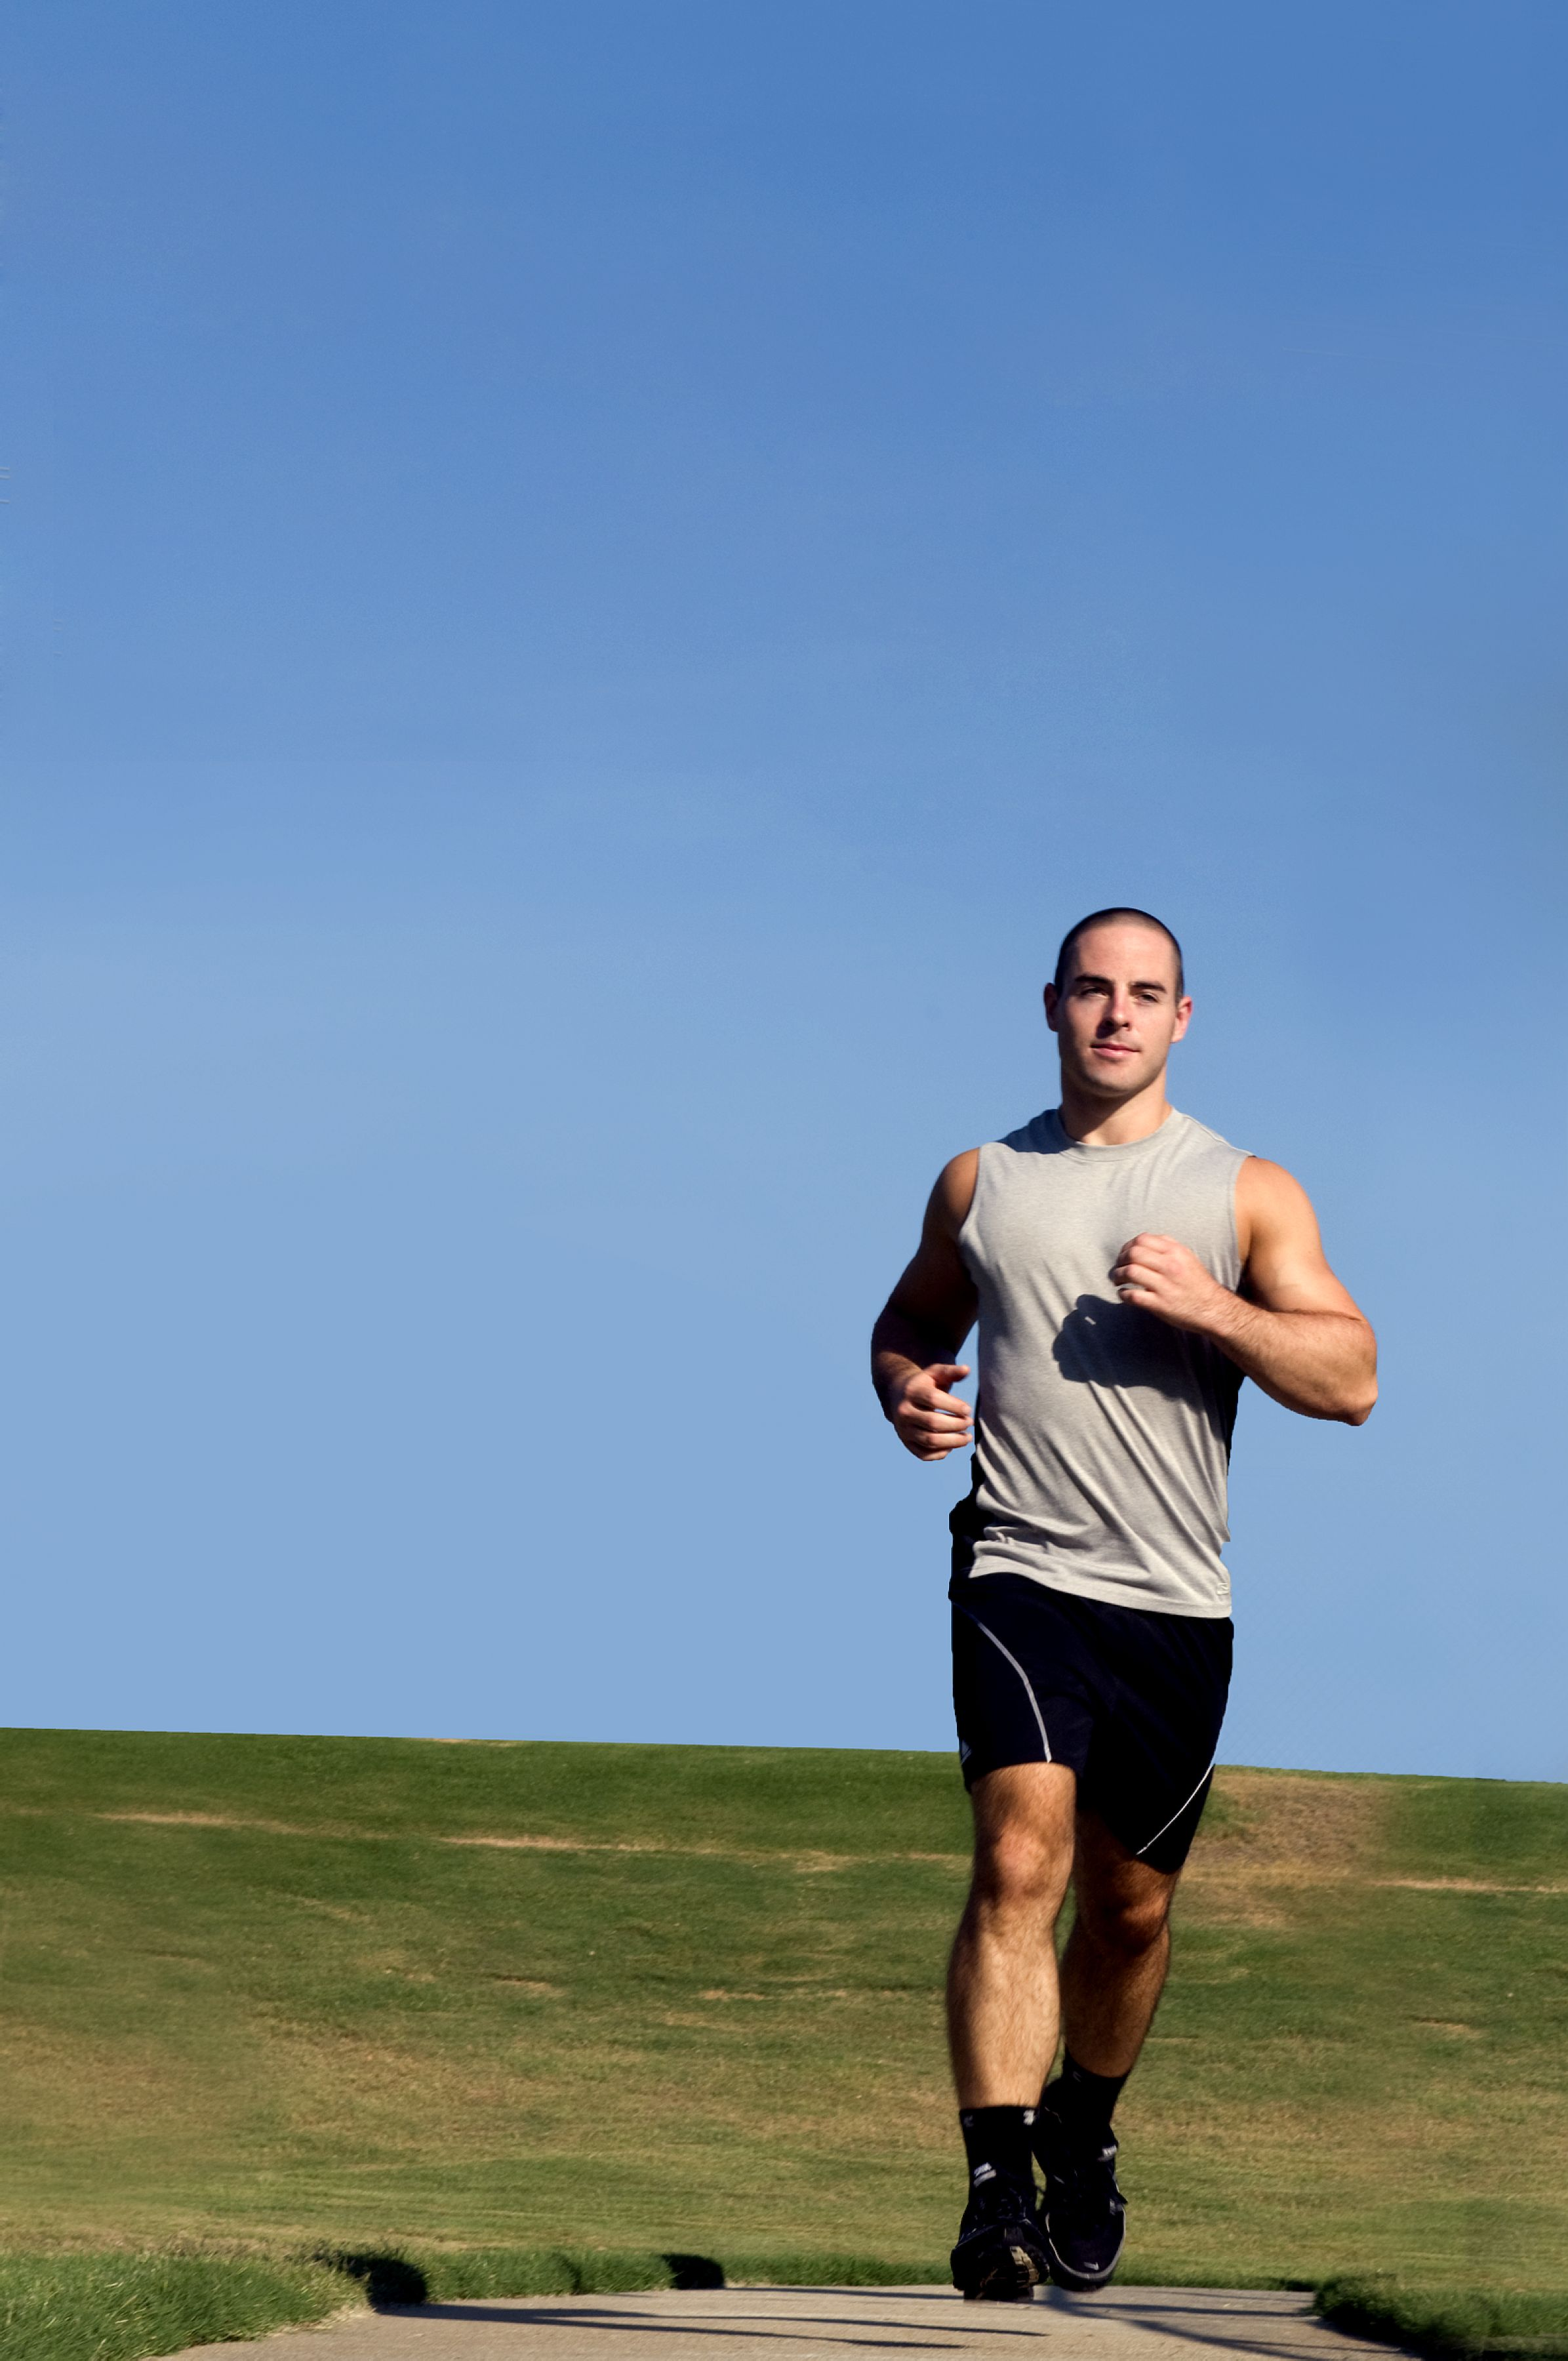 Free picture: young man, jogging